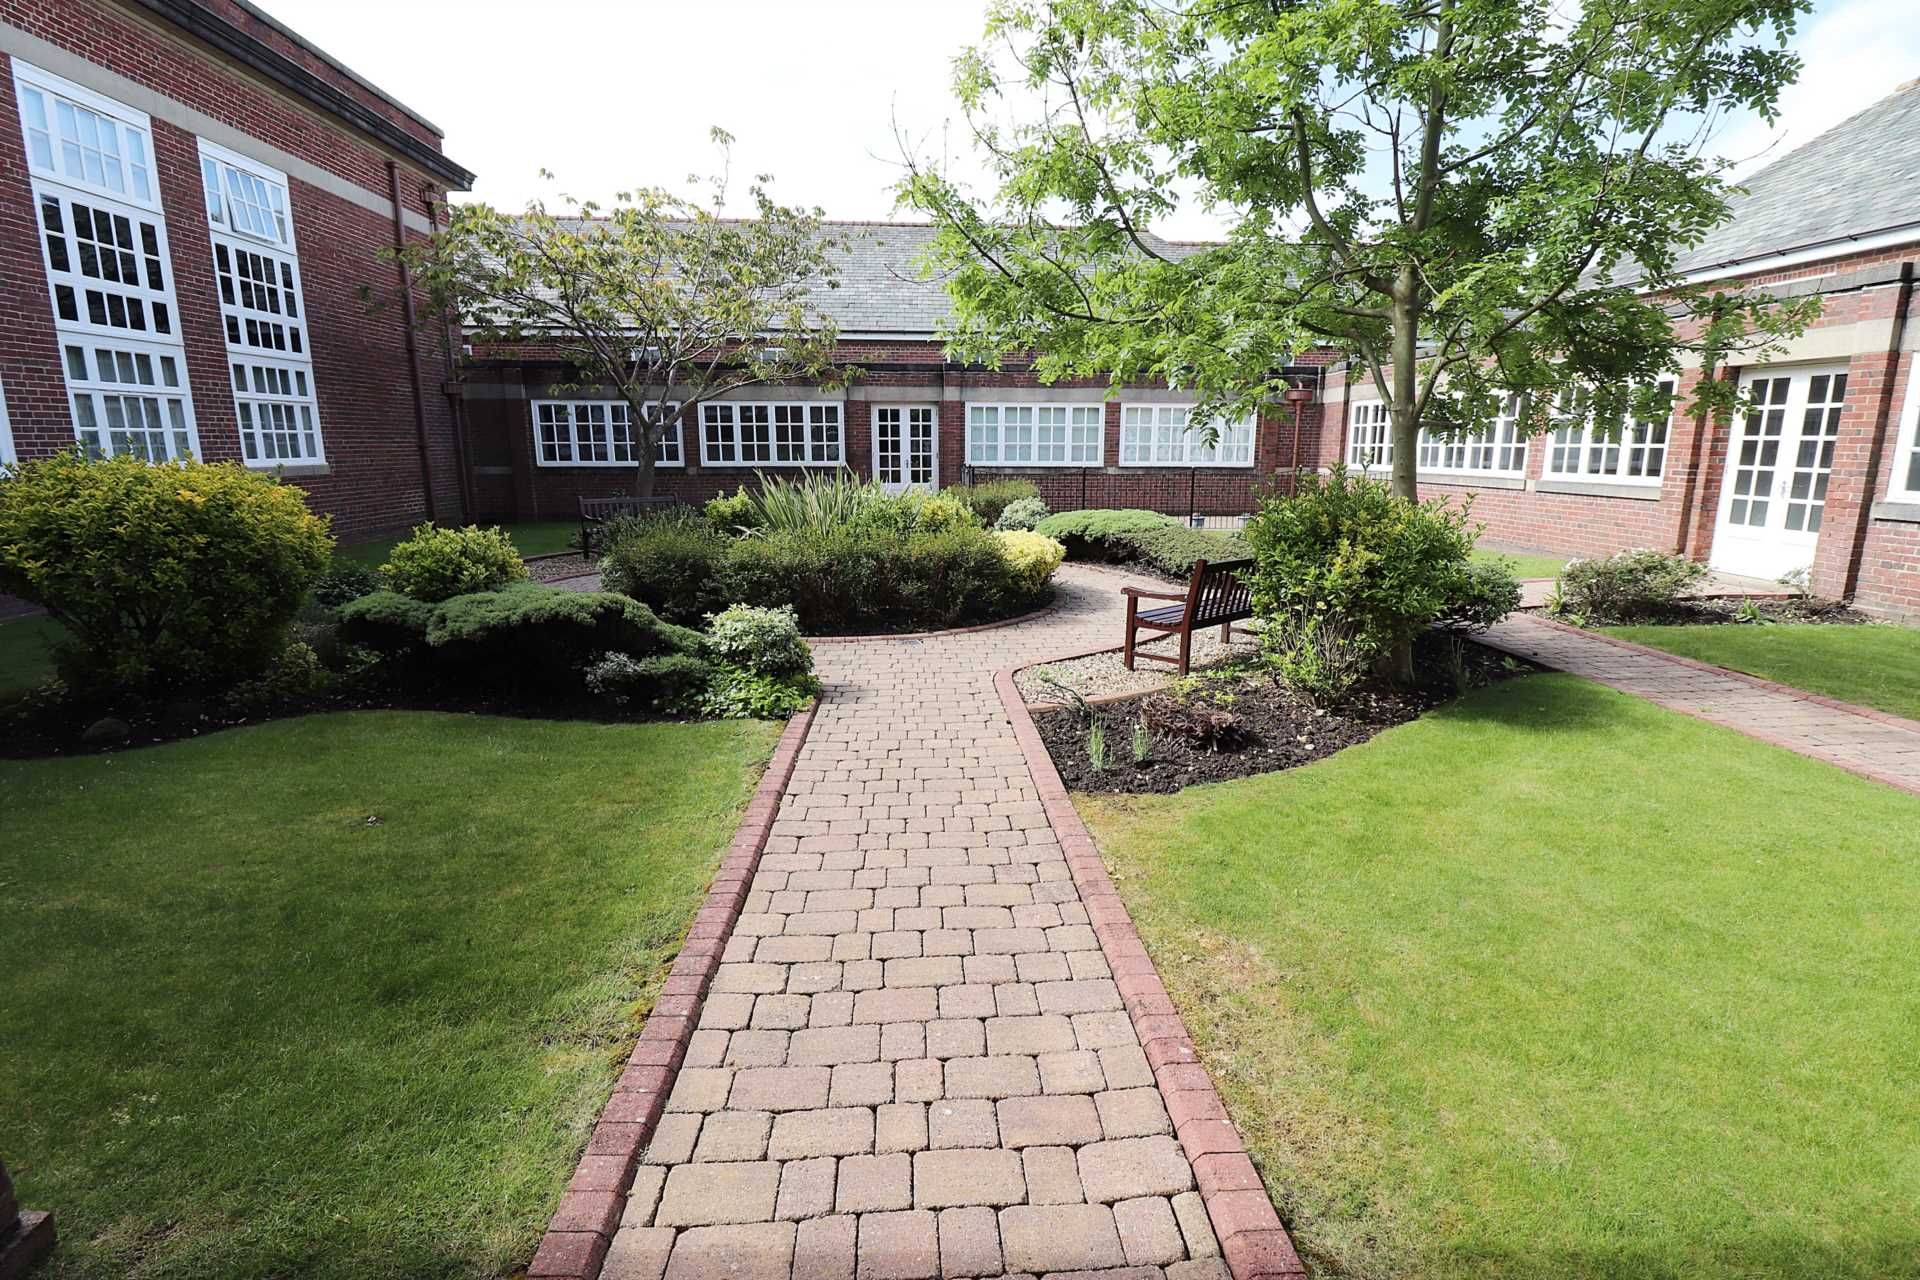 Queens Manor, Clifton Drive South, Lytham St Annes, Image 10